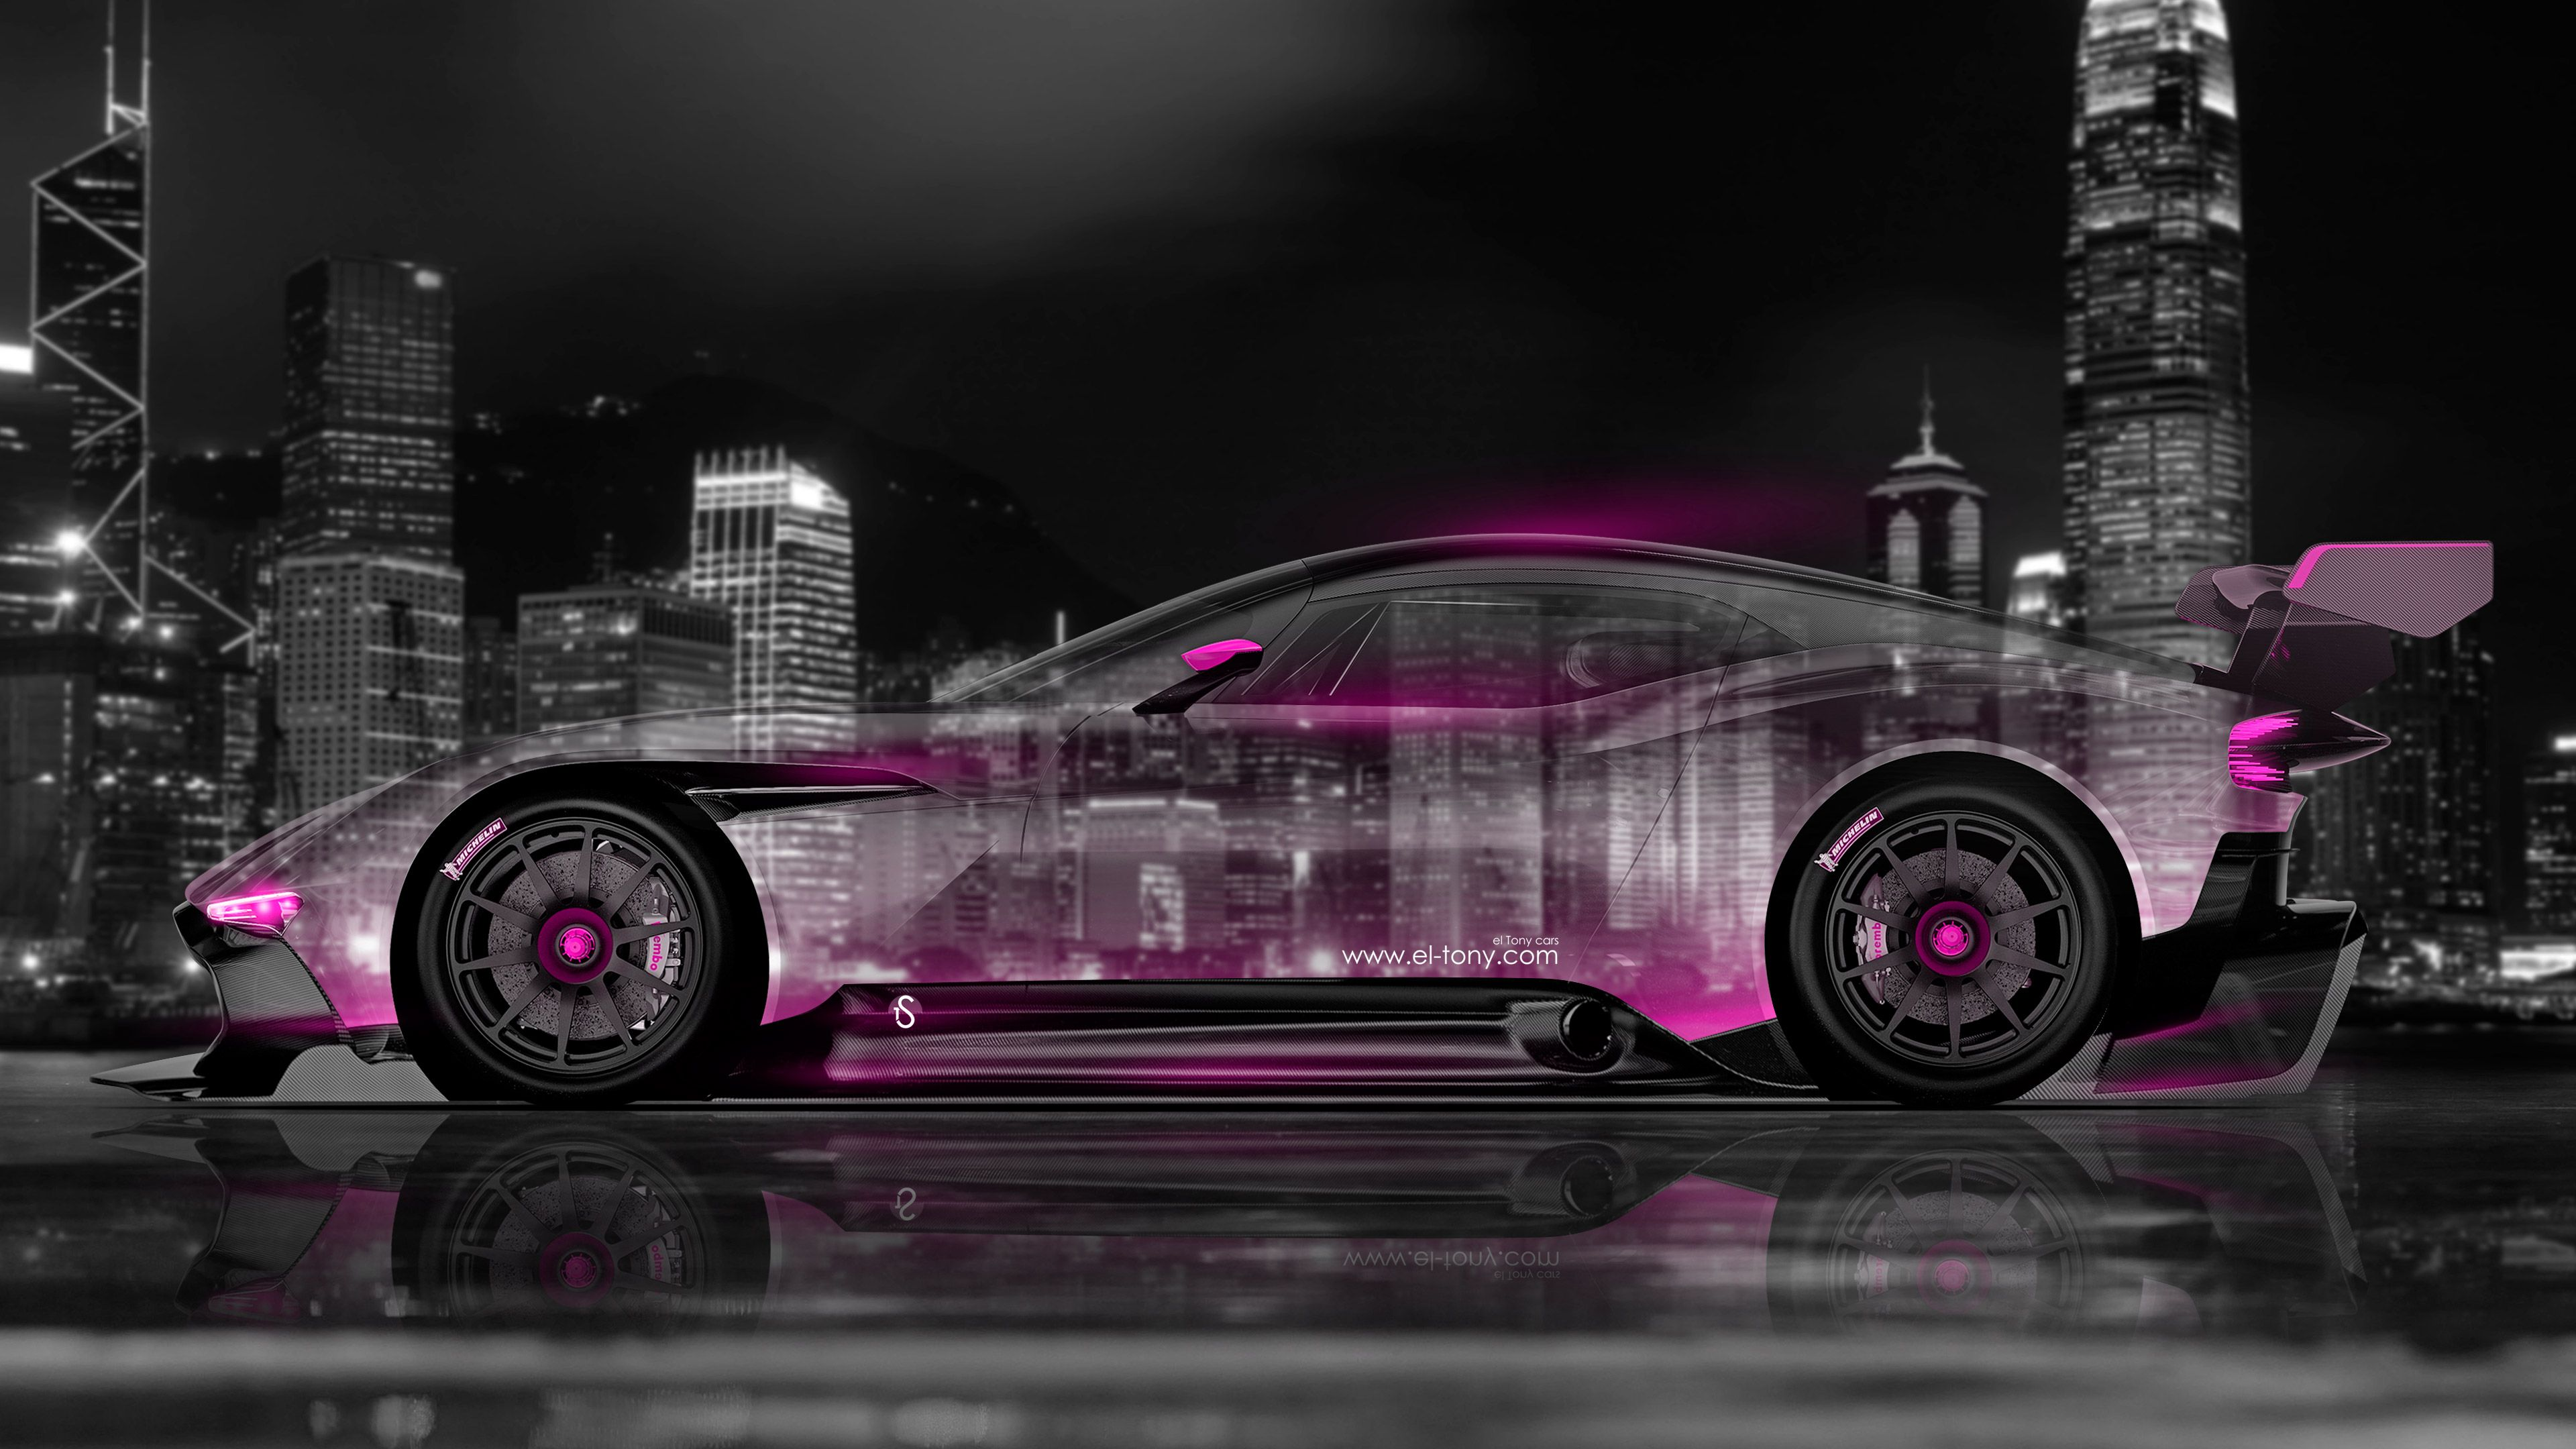 Charmant Aston Martin Vulcan Side Crystal City Car 2015